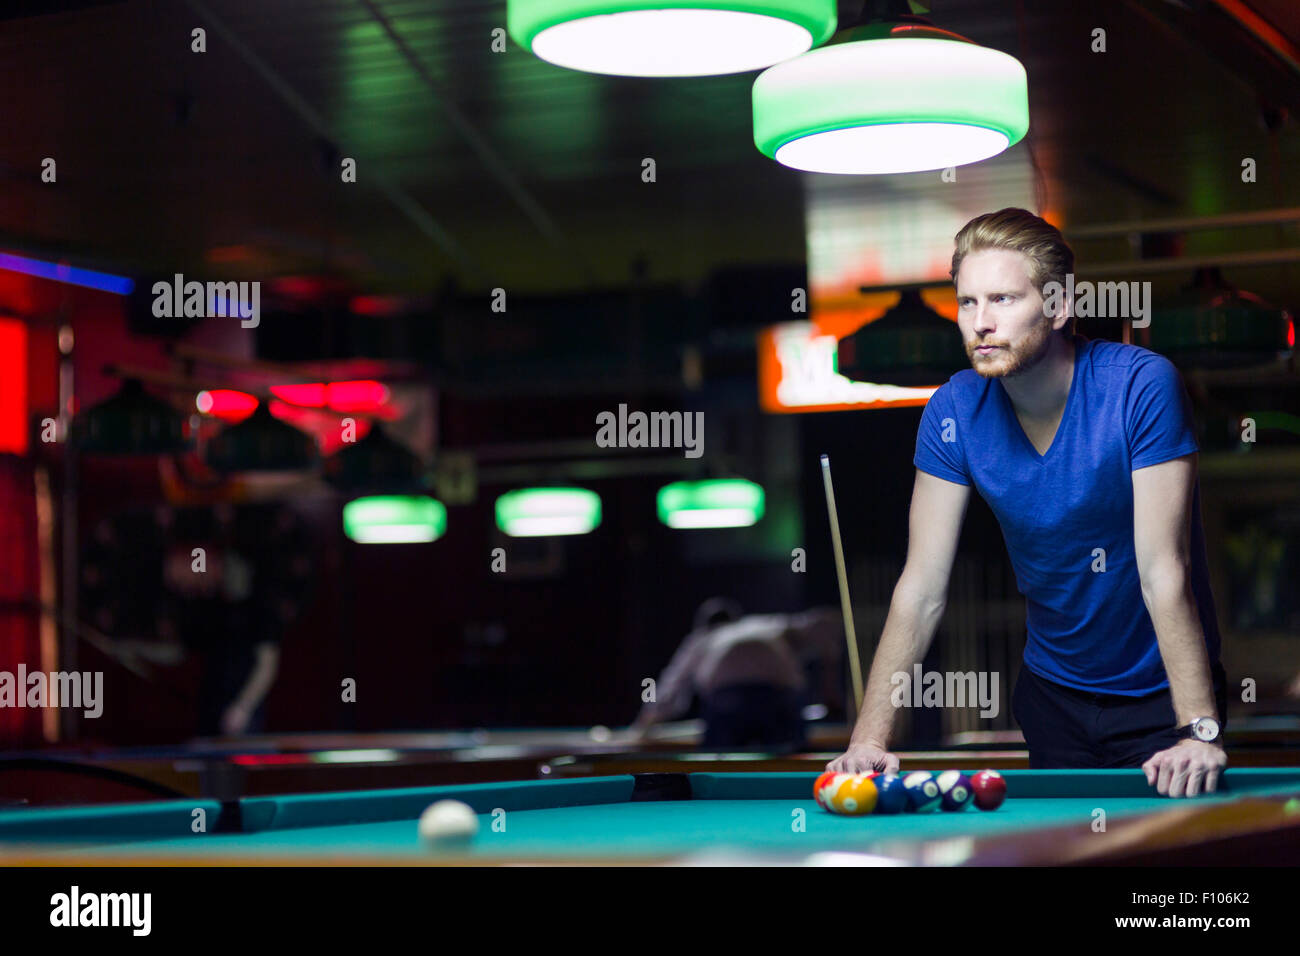 Handsome young snooker player bending over the table in a bar with beautiful ambient lighting - Stock Image